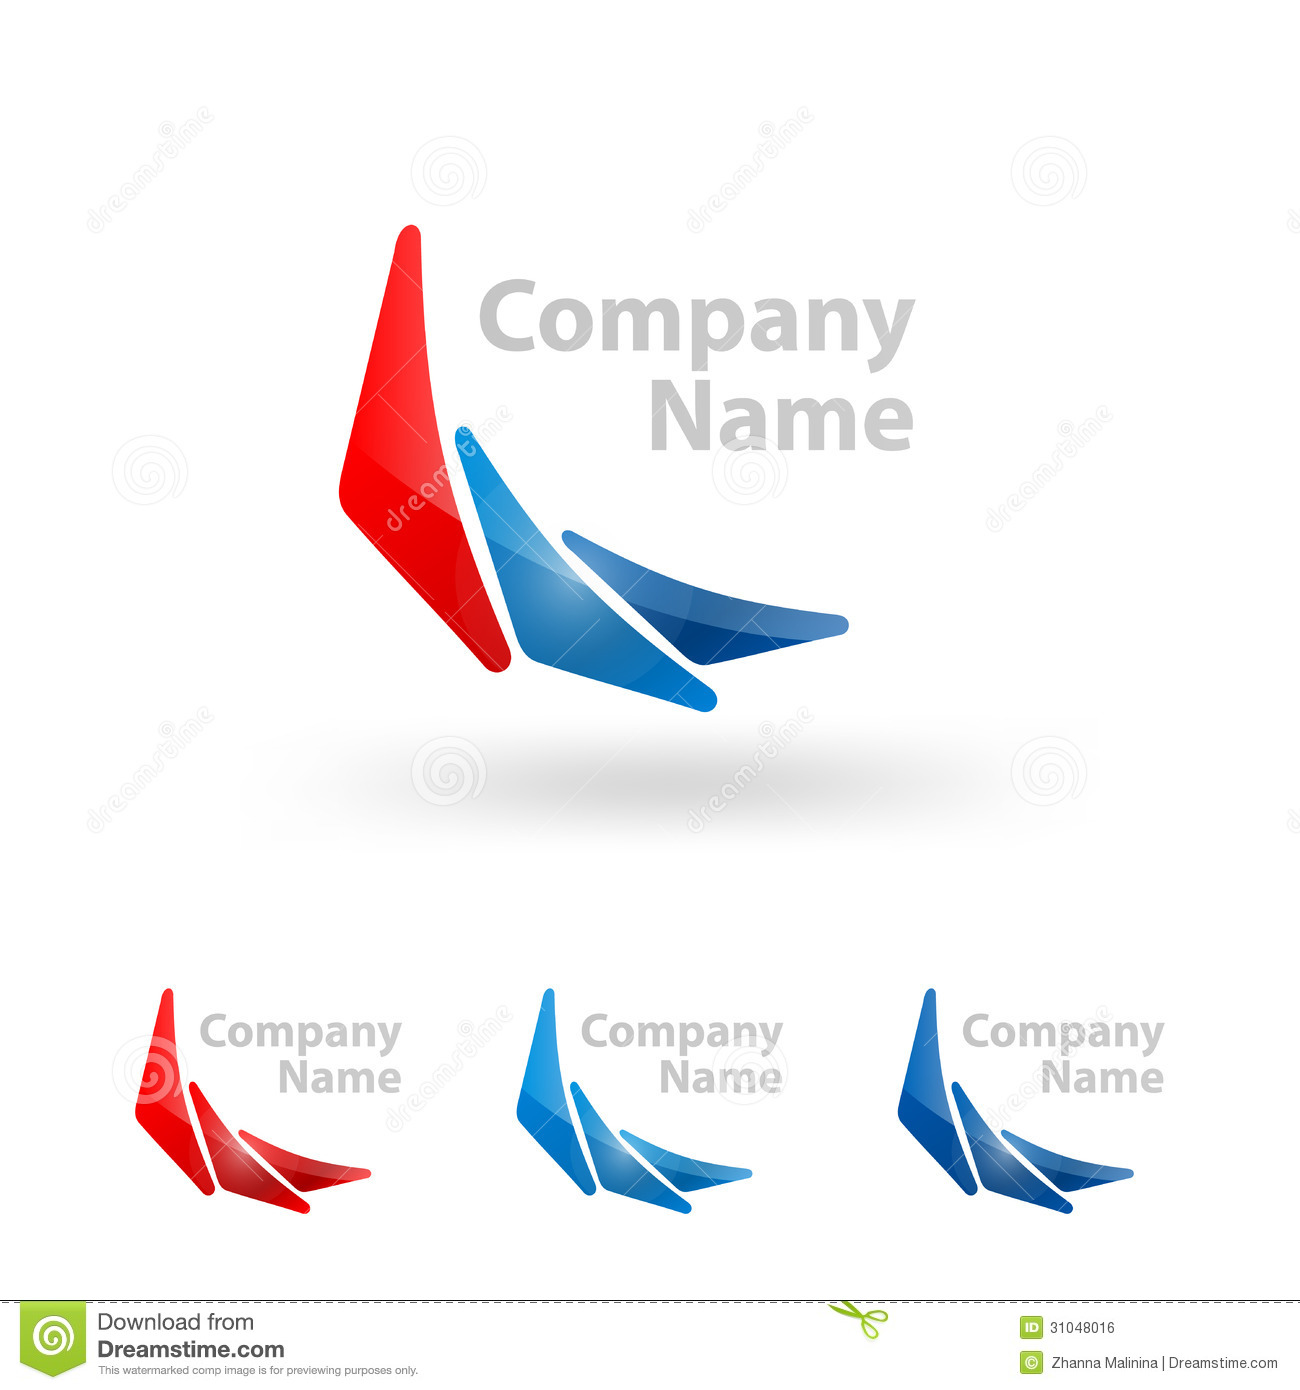 design a company logo free templates - triangle logo company name design stock vector